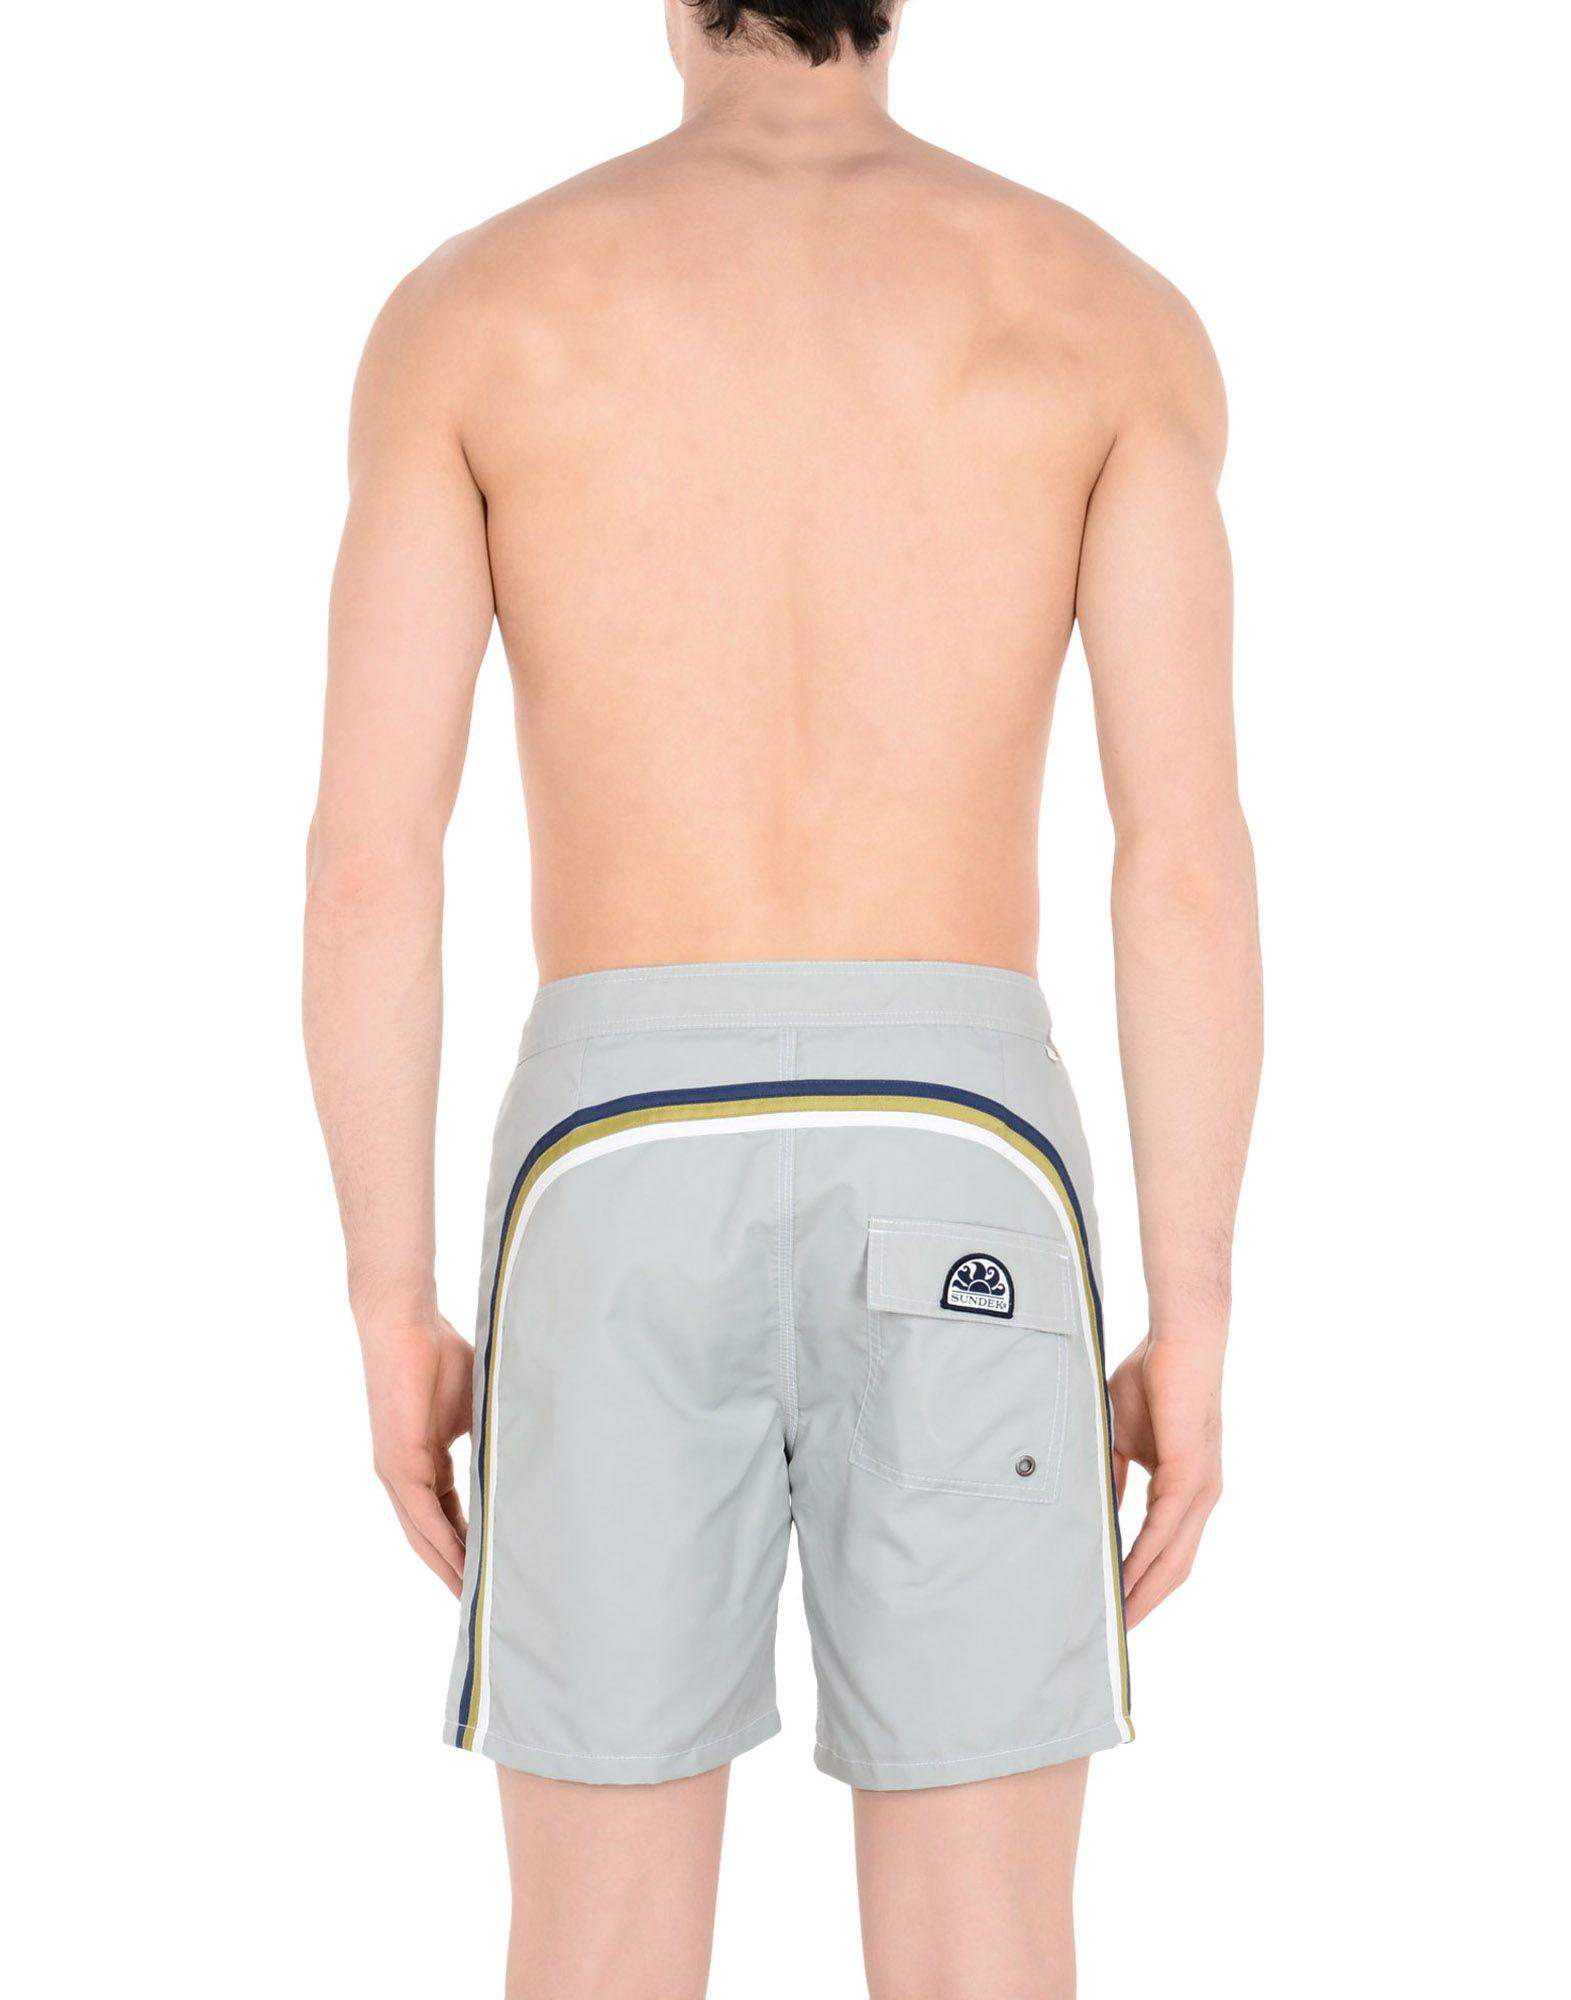 61630724ab0a2 Lyst - Sundek Swimming Trunks in Gray for Men